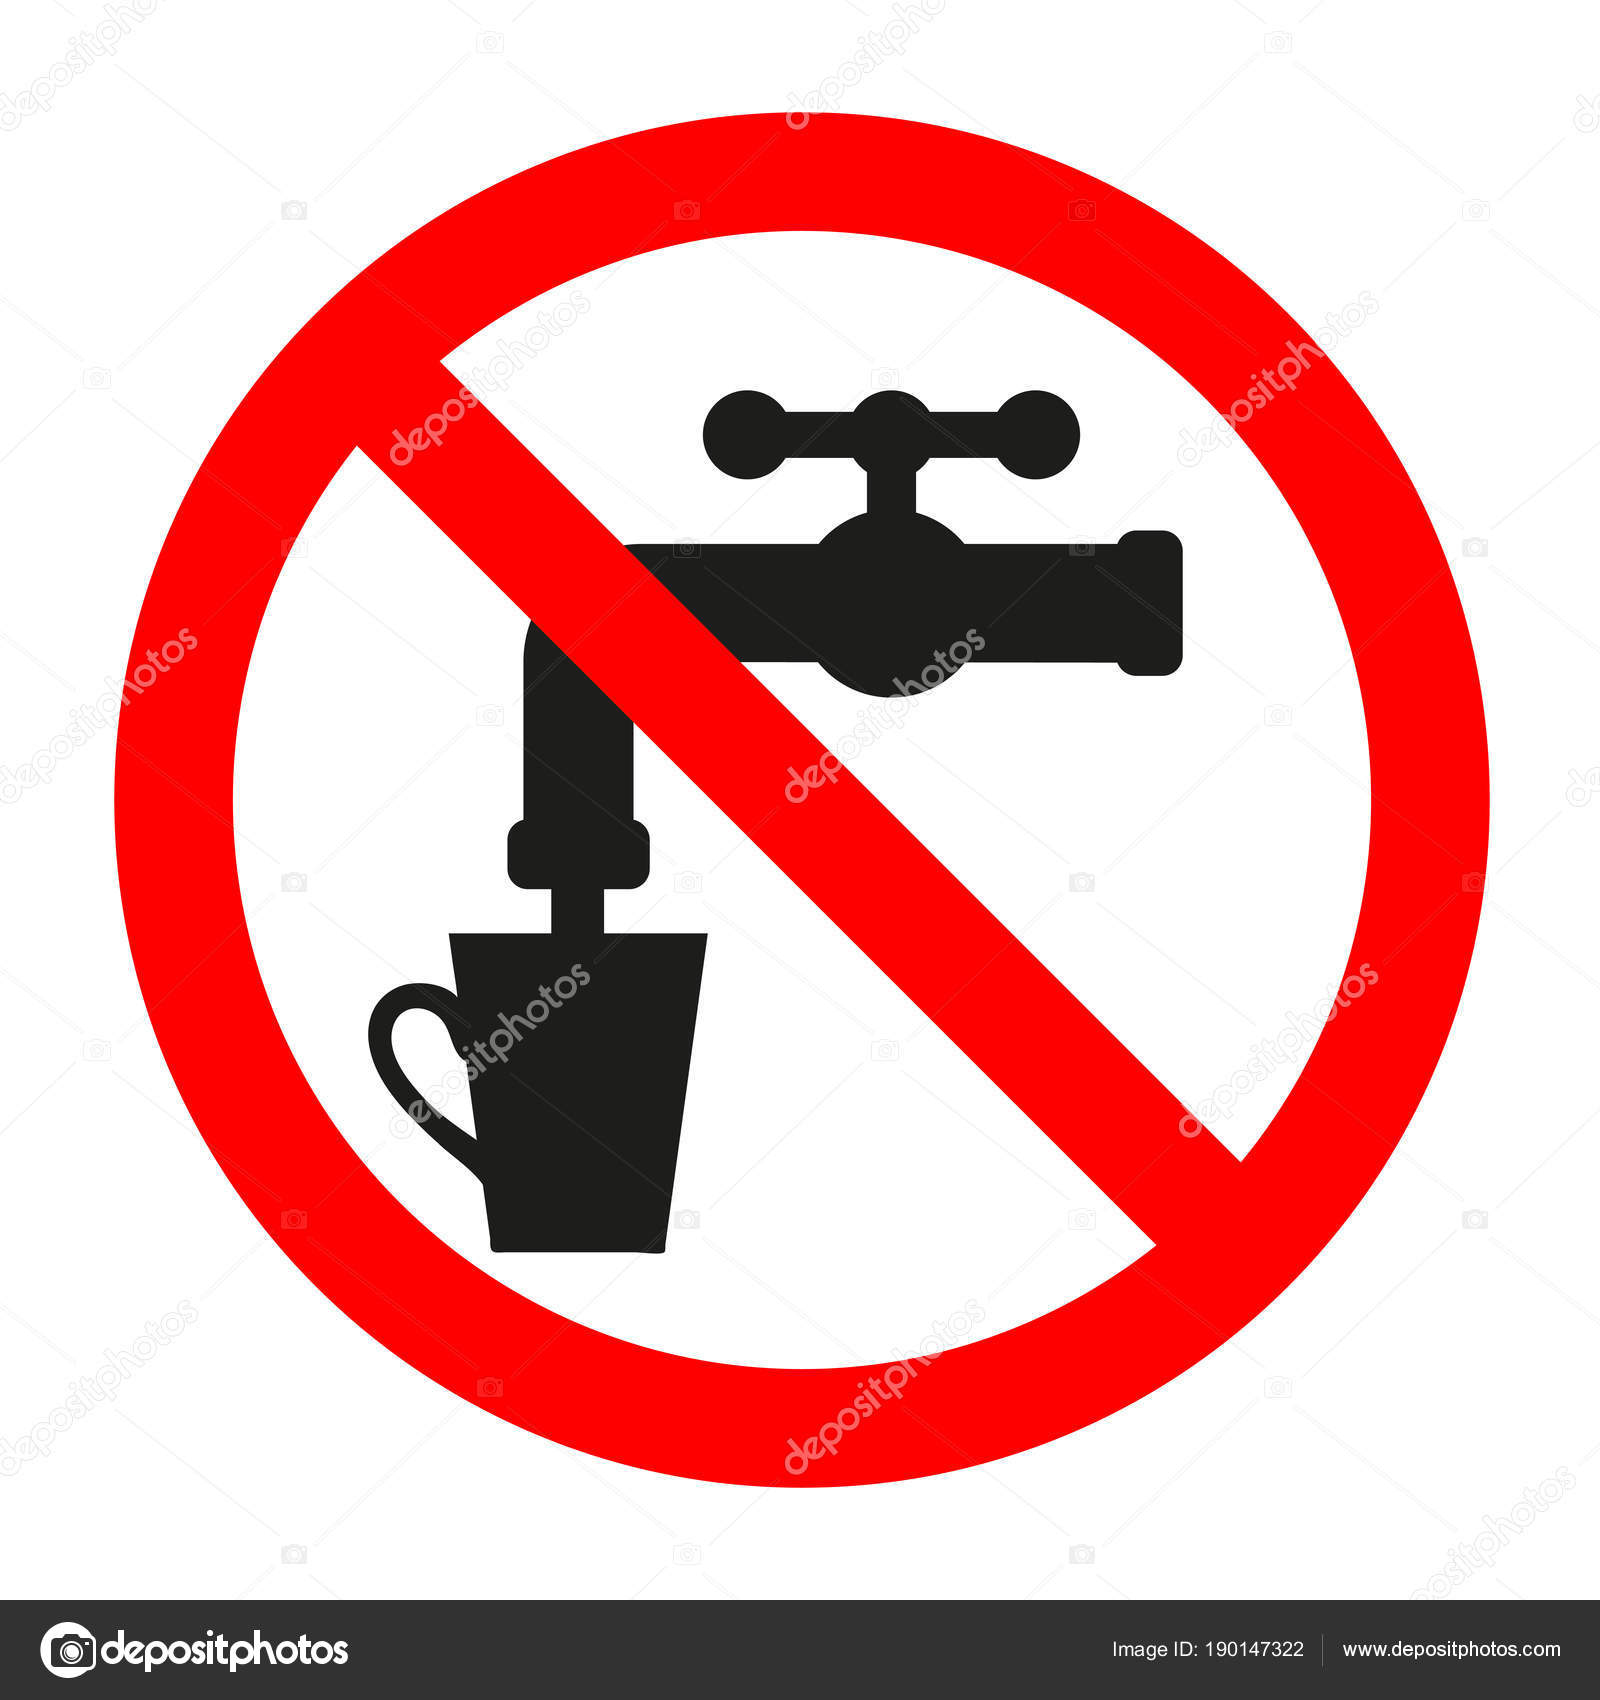 stop stock flow image faucets free faucet royalty conservation water the to hand photo faucetconservation of